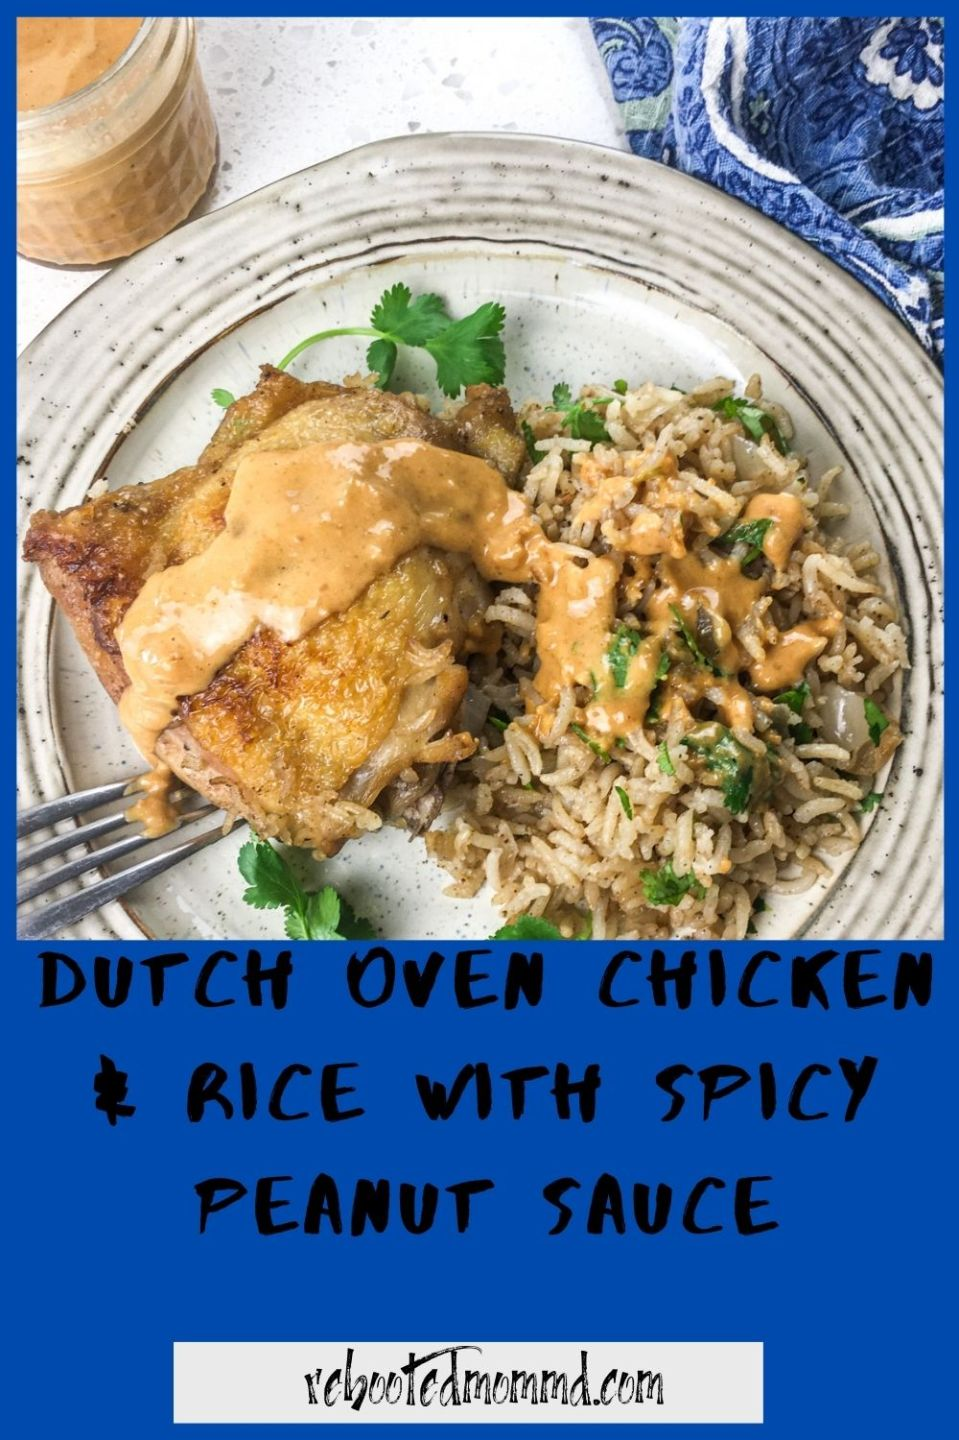 Dutch Oven Chicken & Rice with Spicy Peanut Sauce